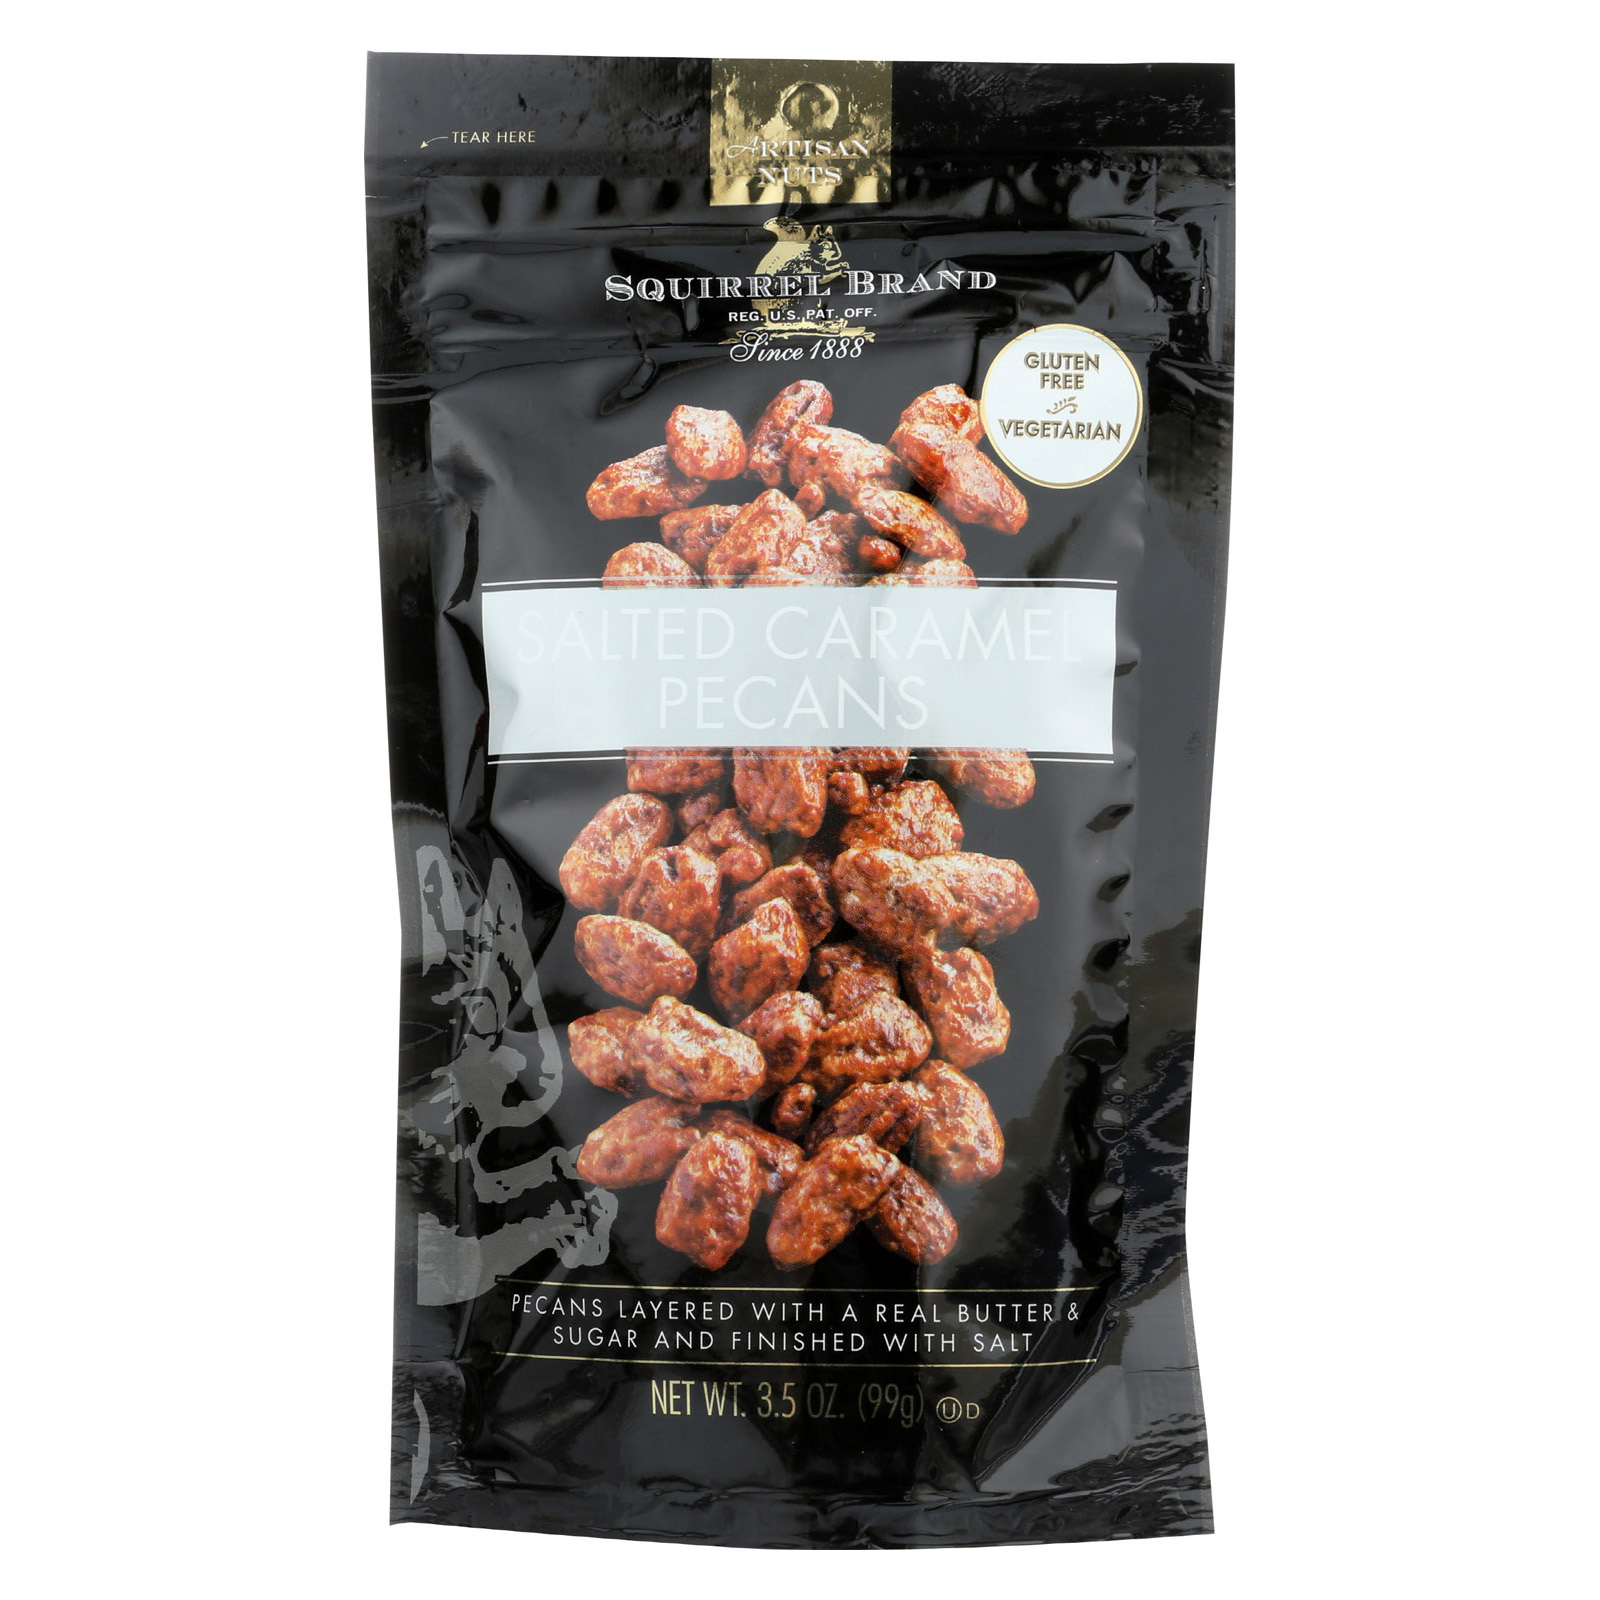 Squirrel Brand Pecans - Salted Caramel - Case of 6 - 3.5 oz